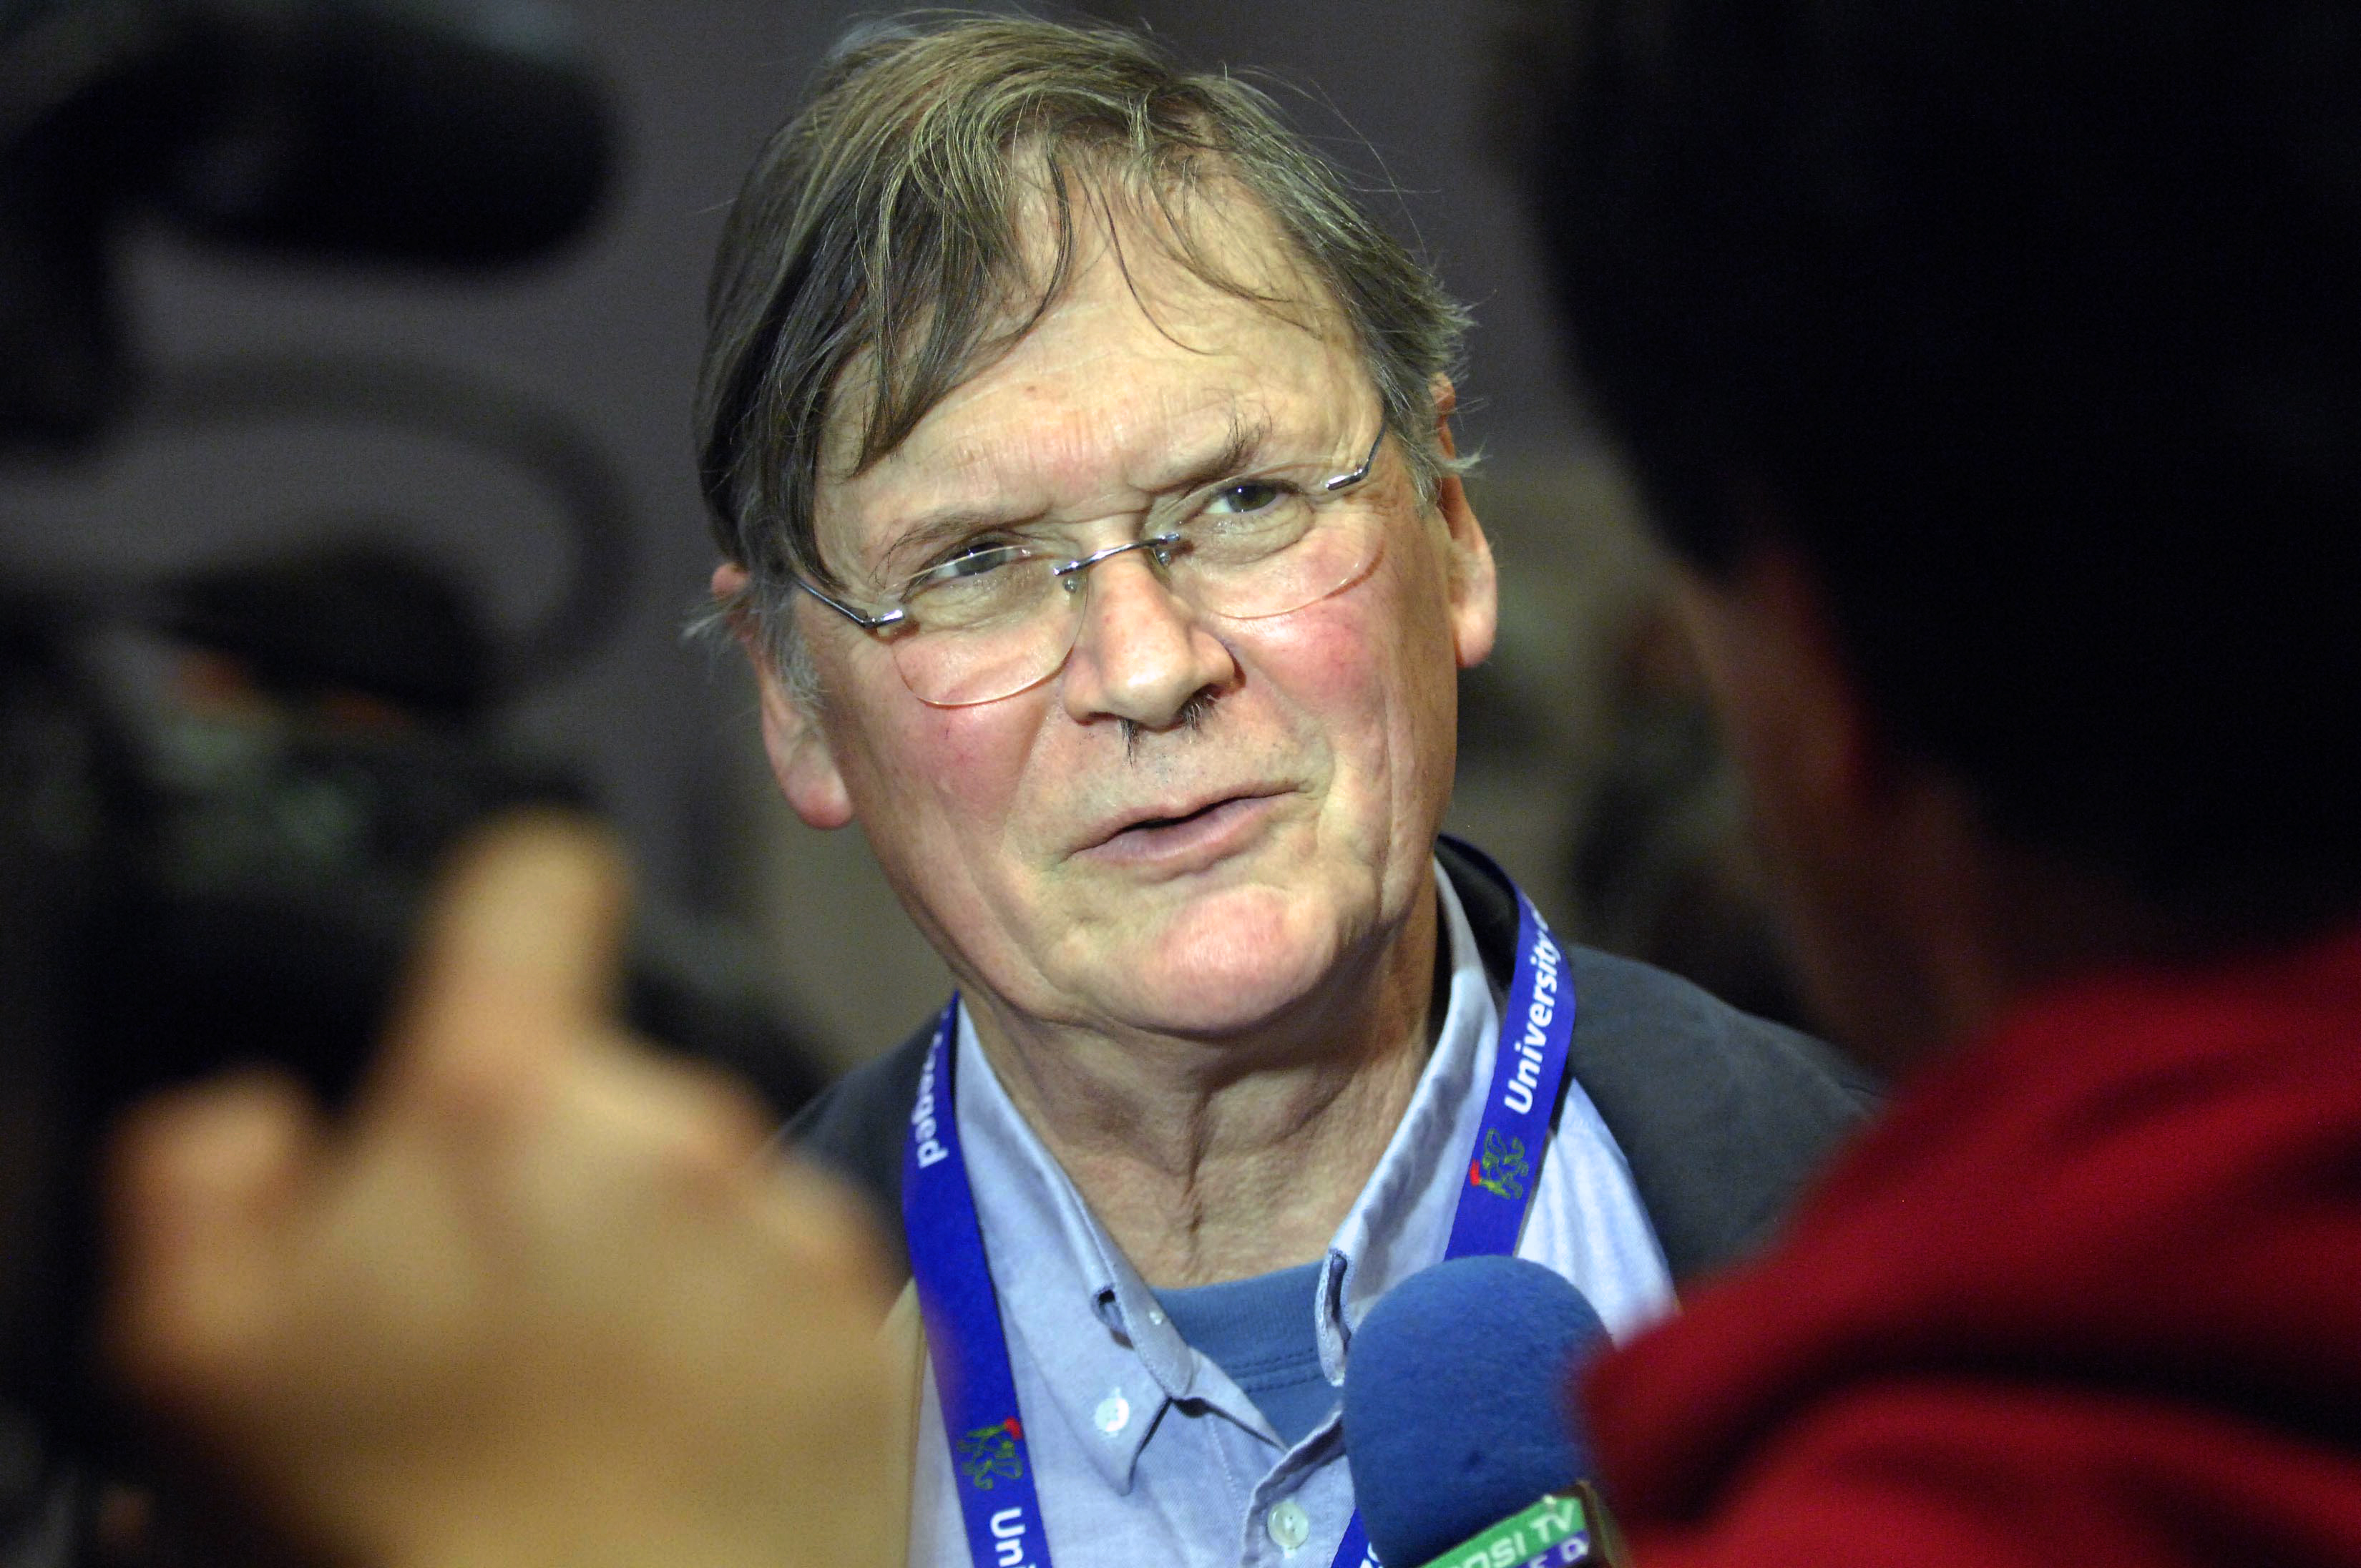 English biochemist, the Nobel-prize winner Sir Richard Timothy 'Tim' Hunt meets with the press at the Jozsef Attila Study and Information Centre of Szeged Sciences University in Szegede on March 22, 2012